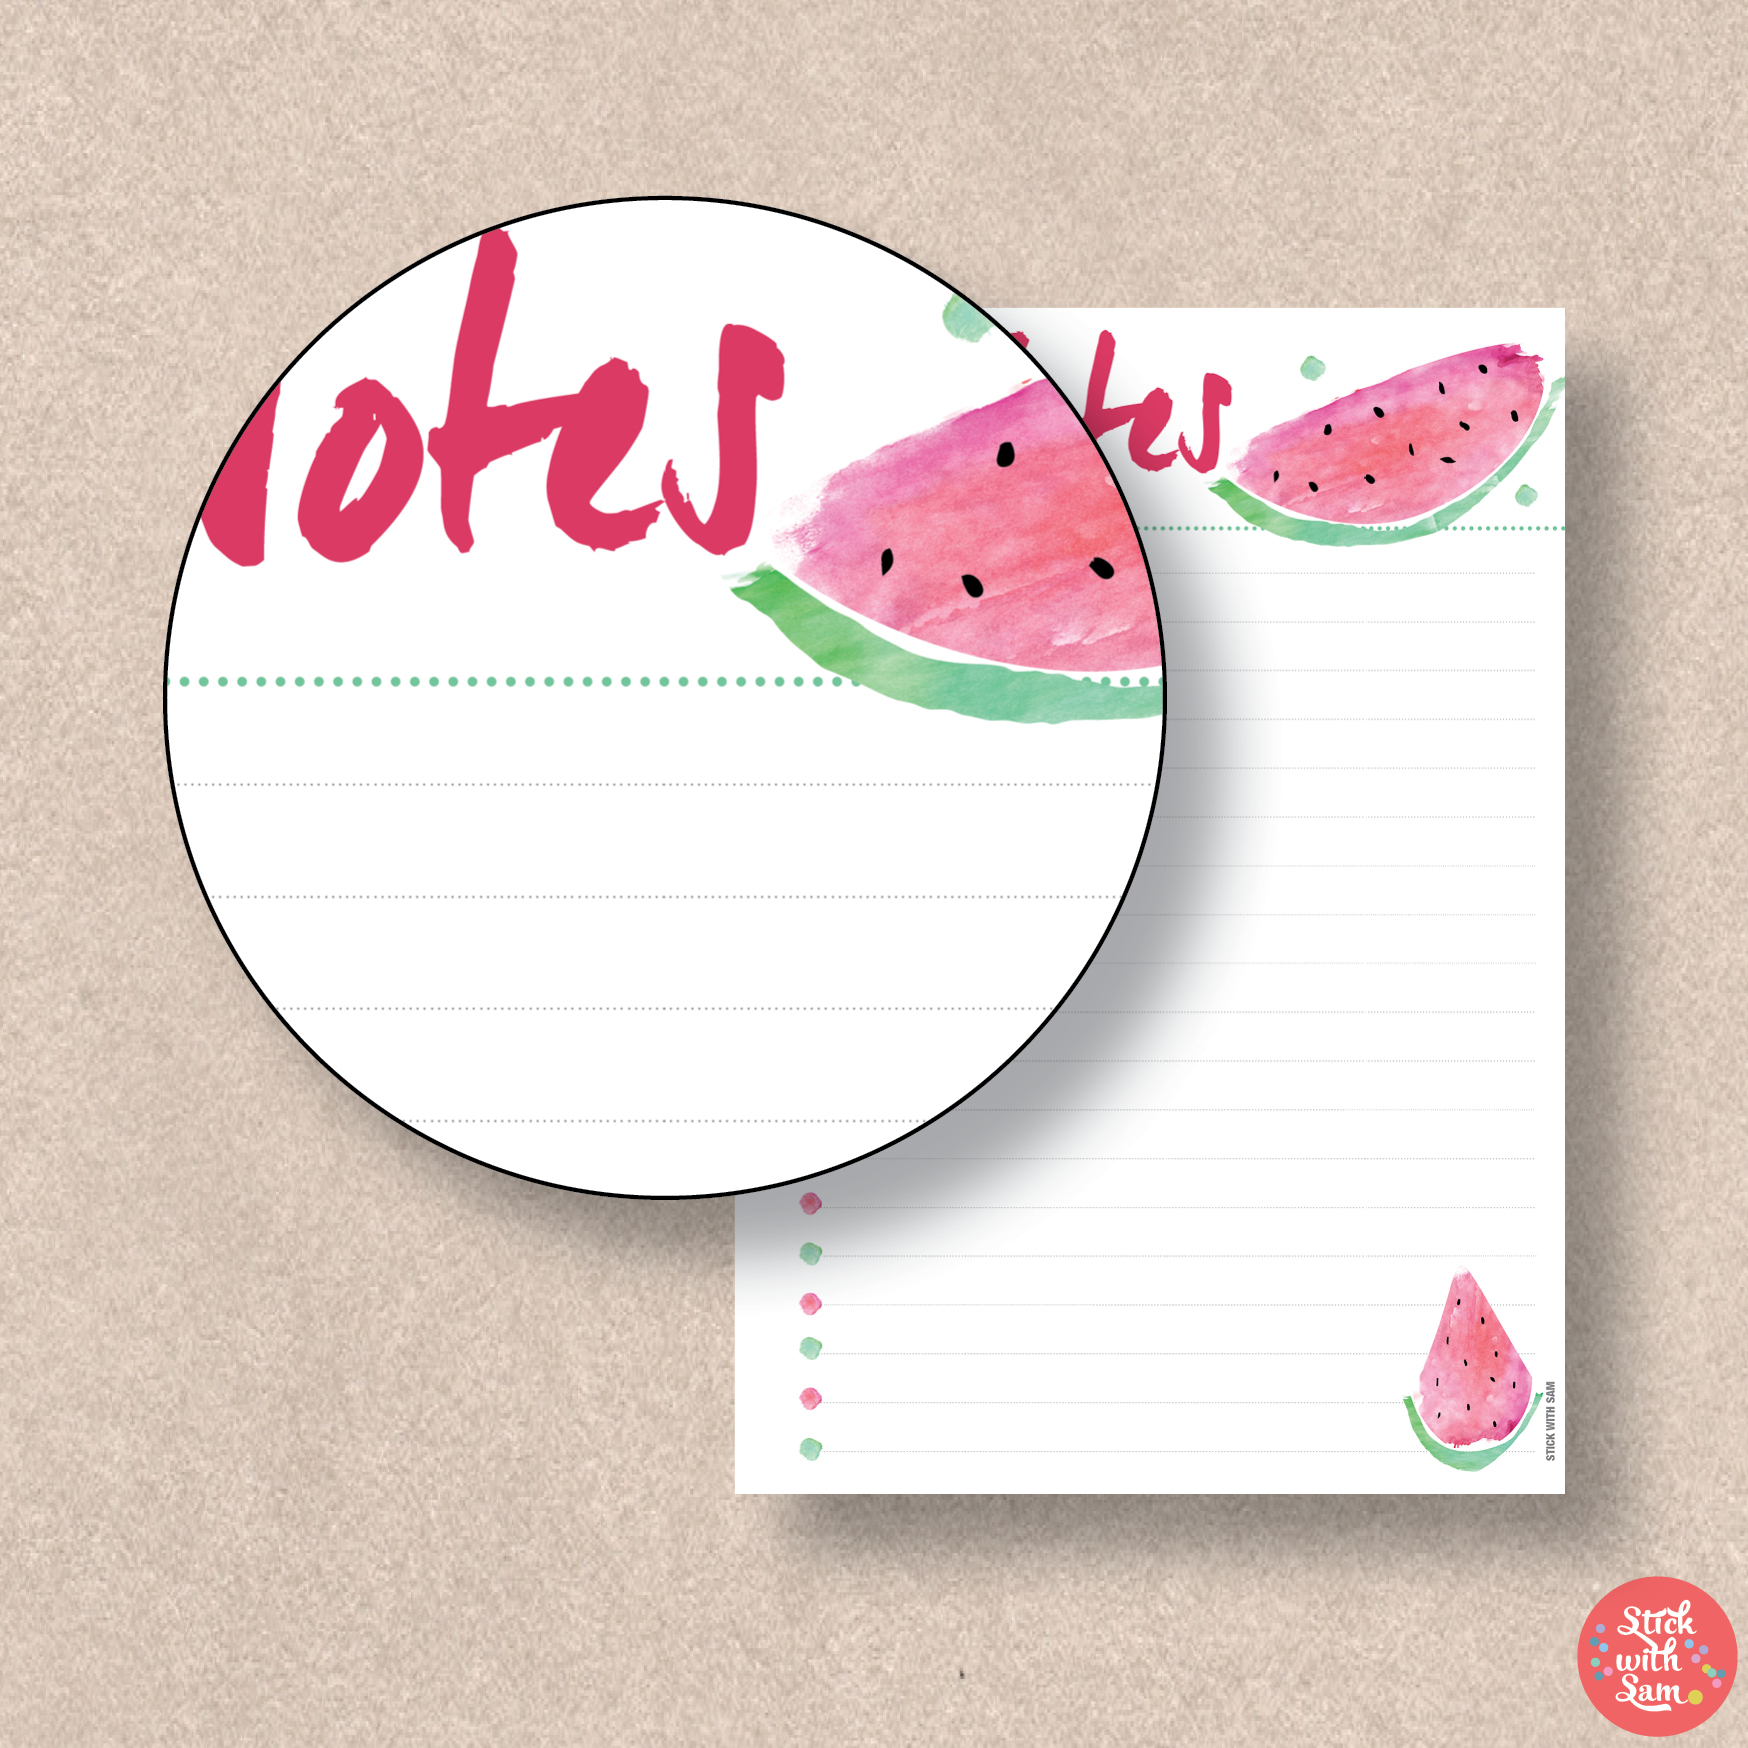 graphic regarding Watermelon Printable called Watermelon Notes Printable Planner